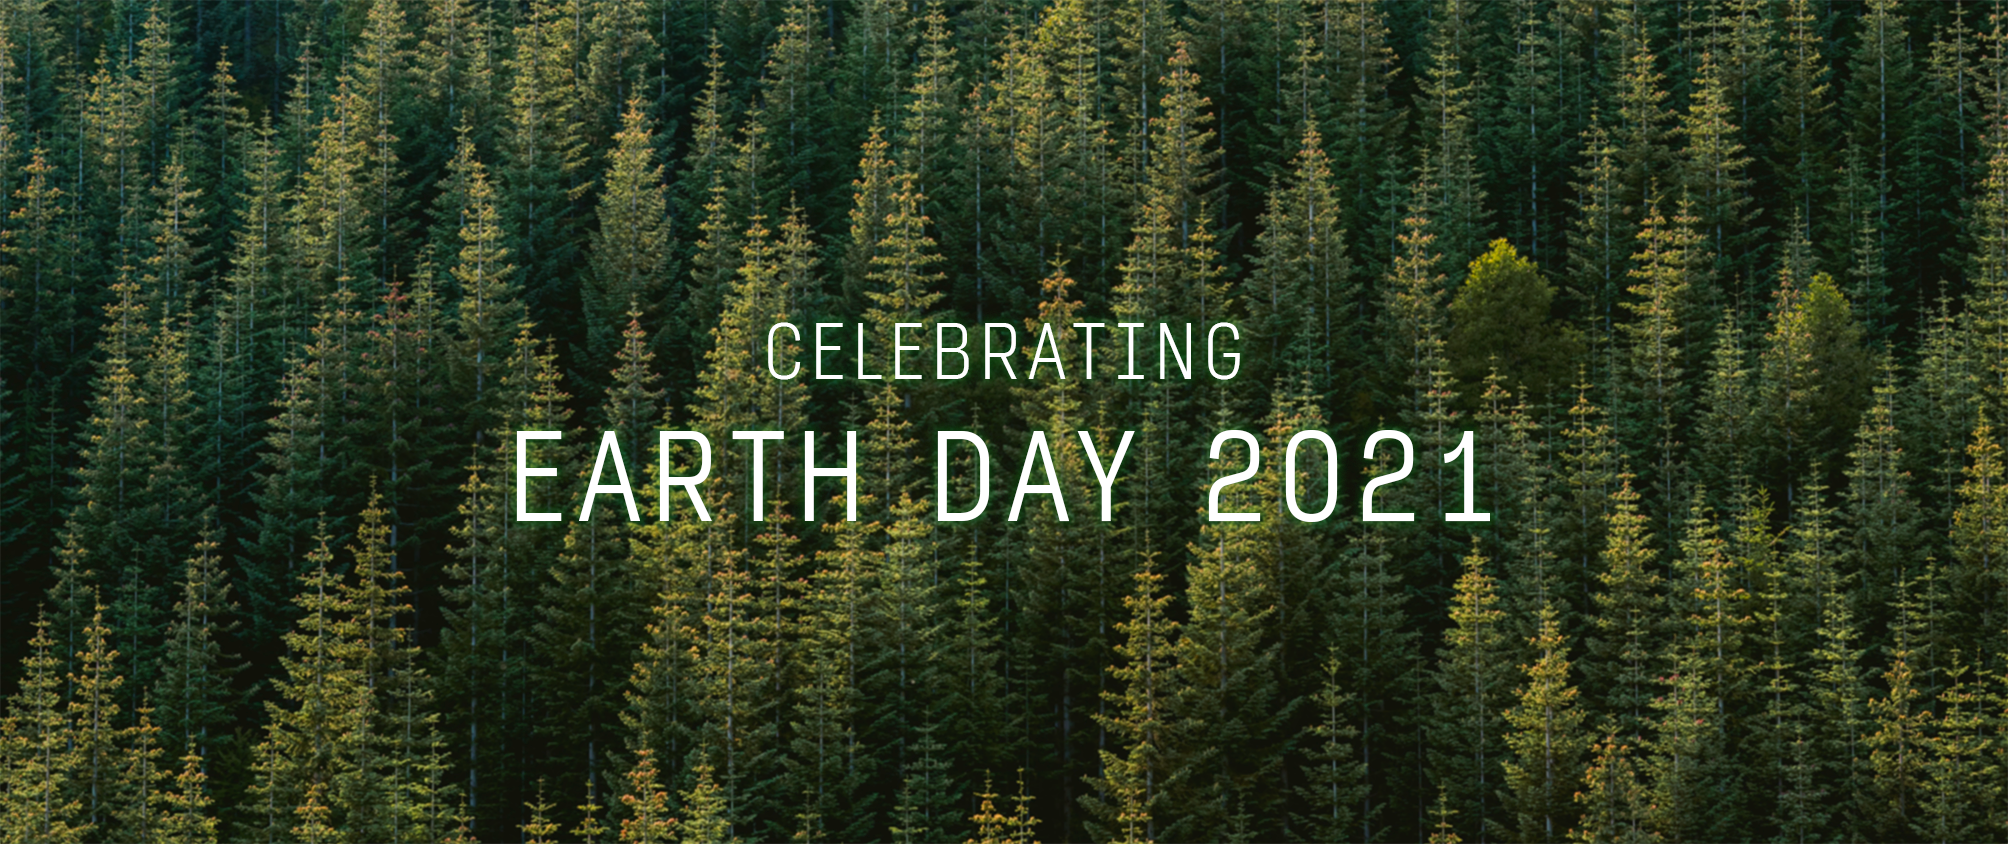 Earth Day 2021 banner with forest background